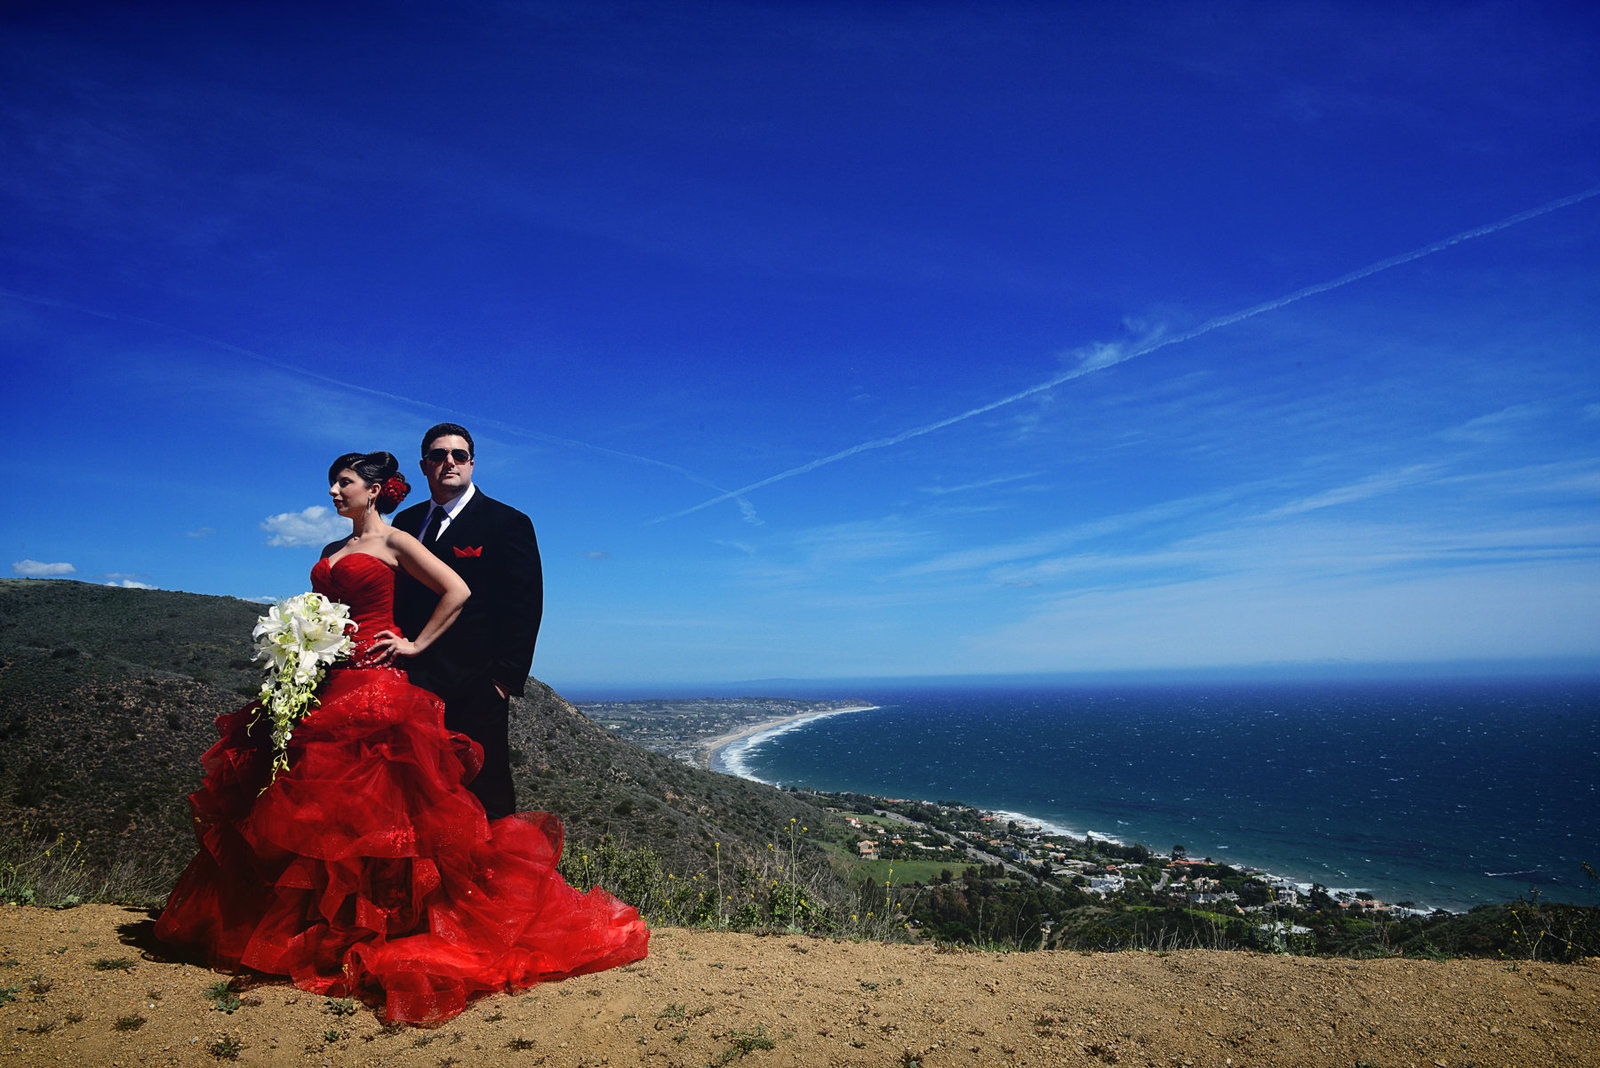 malibu wedding photographer photos celebrity wedding photographer bryan newfield photography ruth mike 21